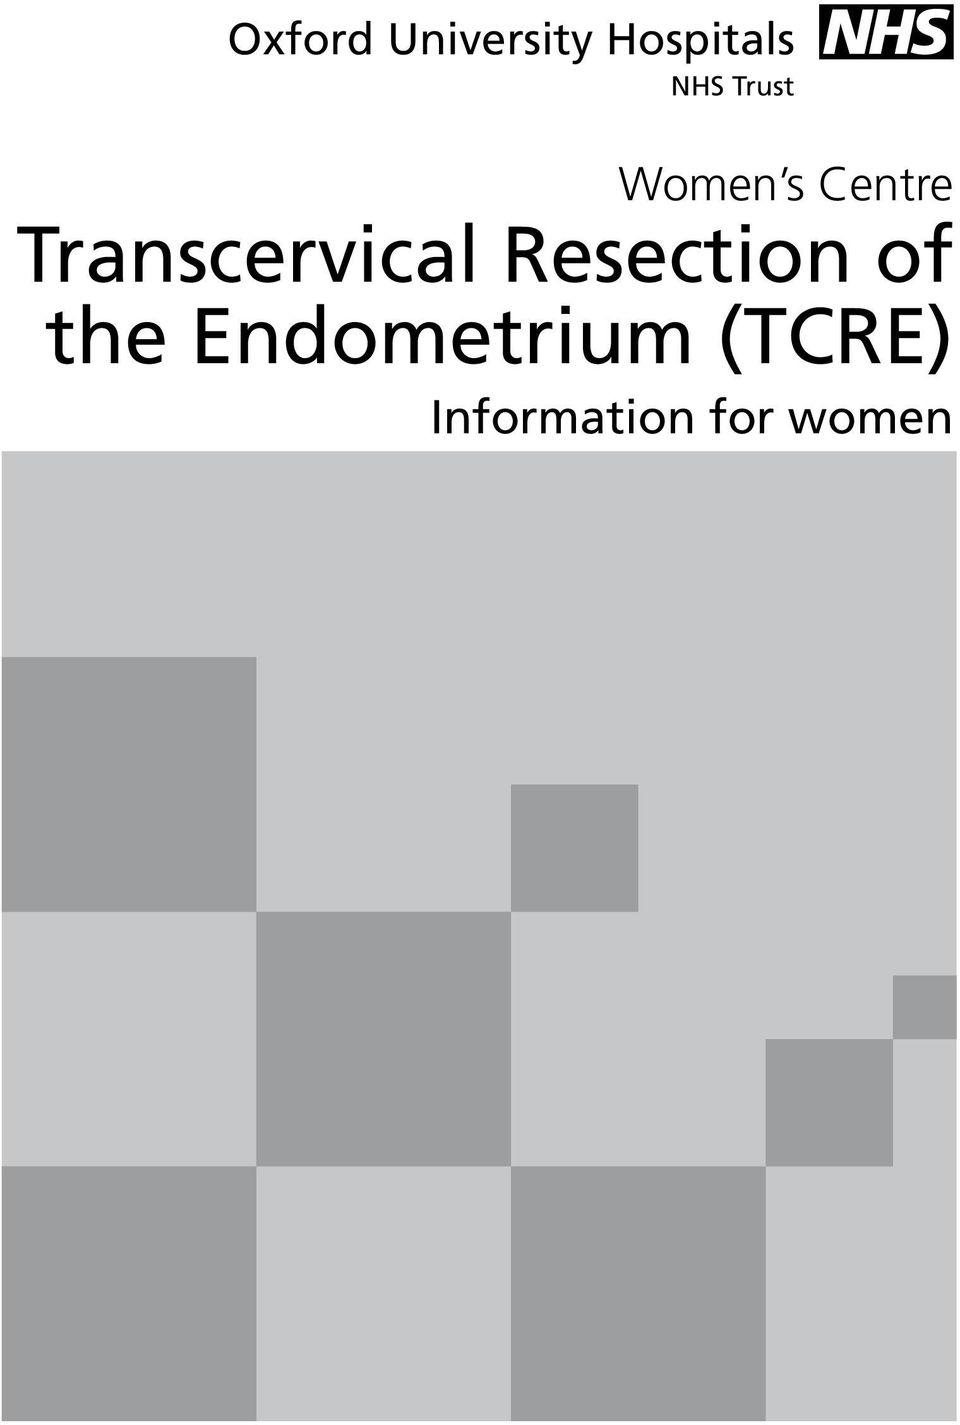 Transcervical Resection of the